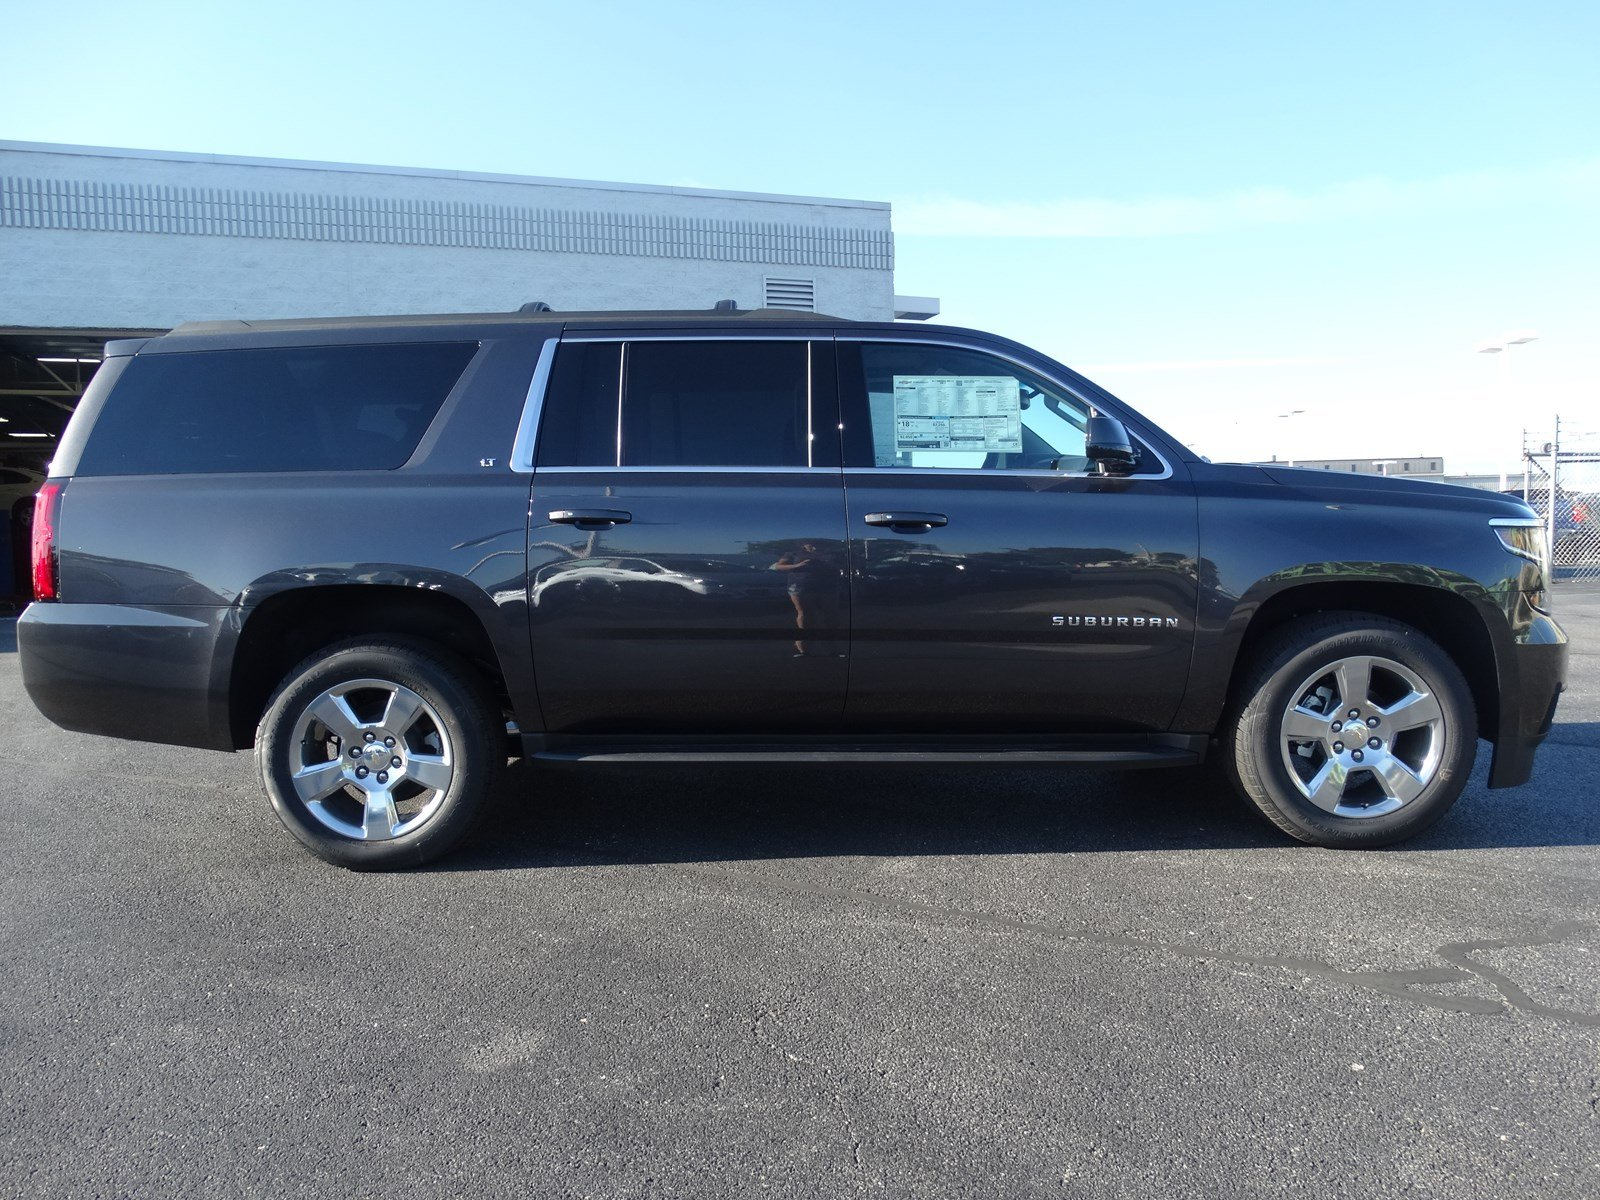 new 2017 chevrolet suburban lt sport utility in naperville t6510 chevrolet of naperville. Black Bedroom Furniture Sets. Home Design Ideas